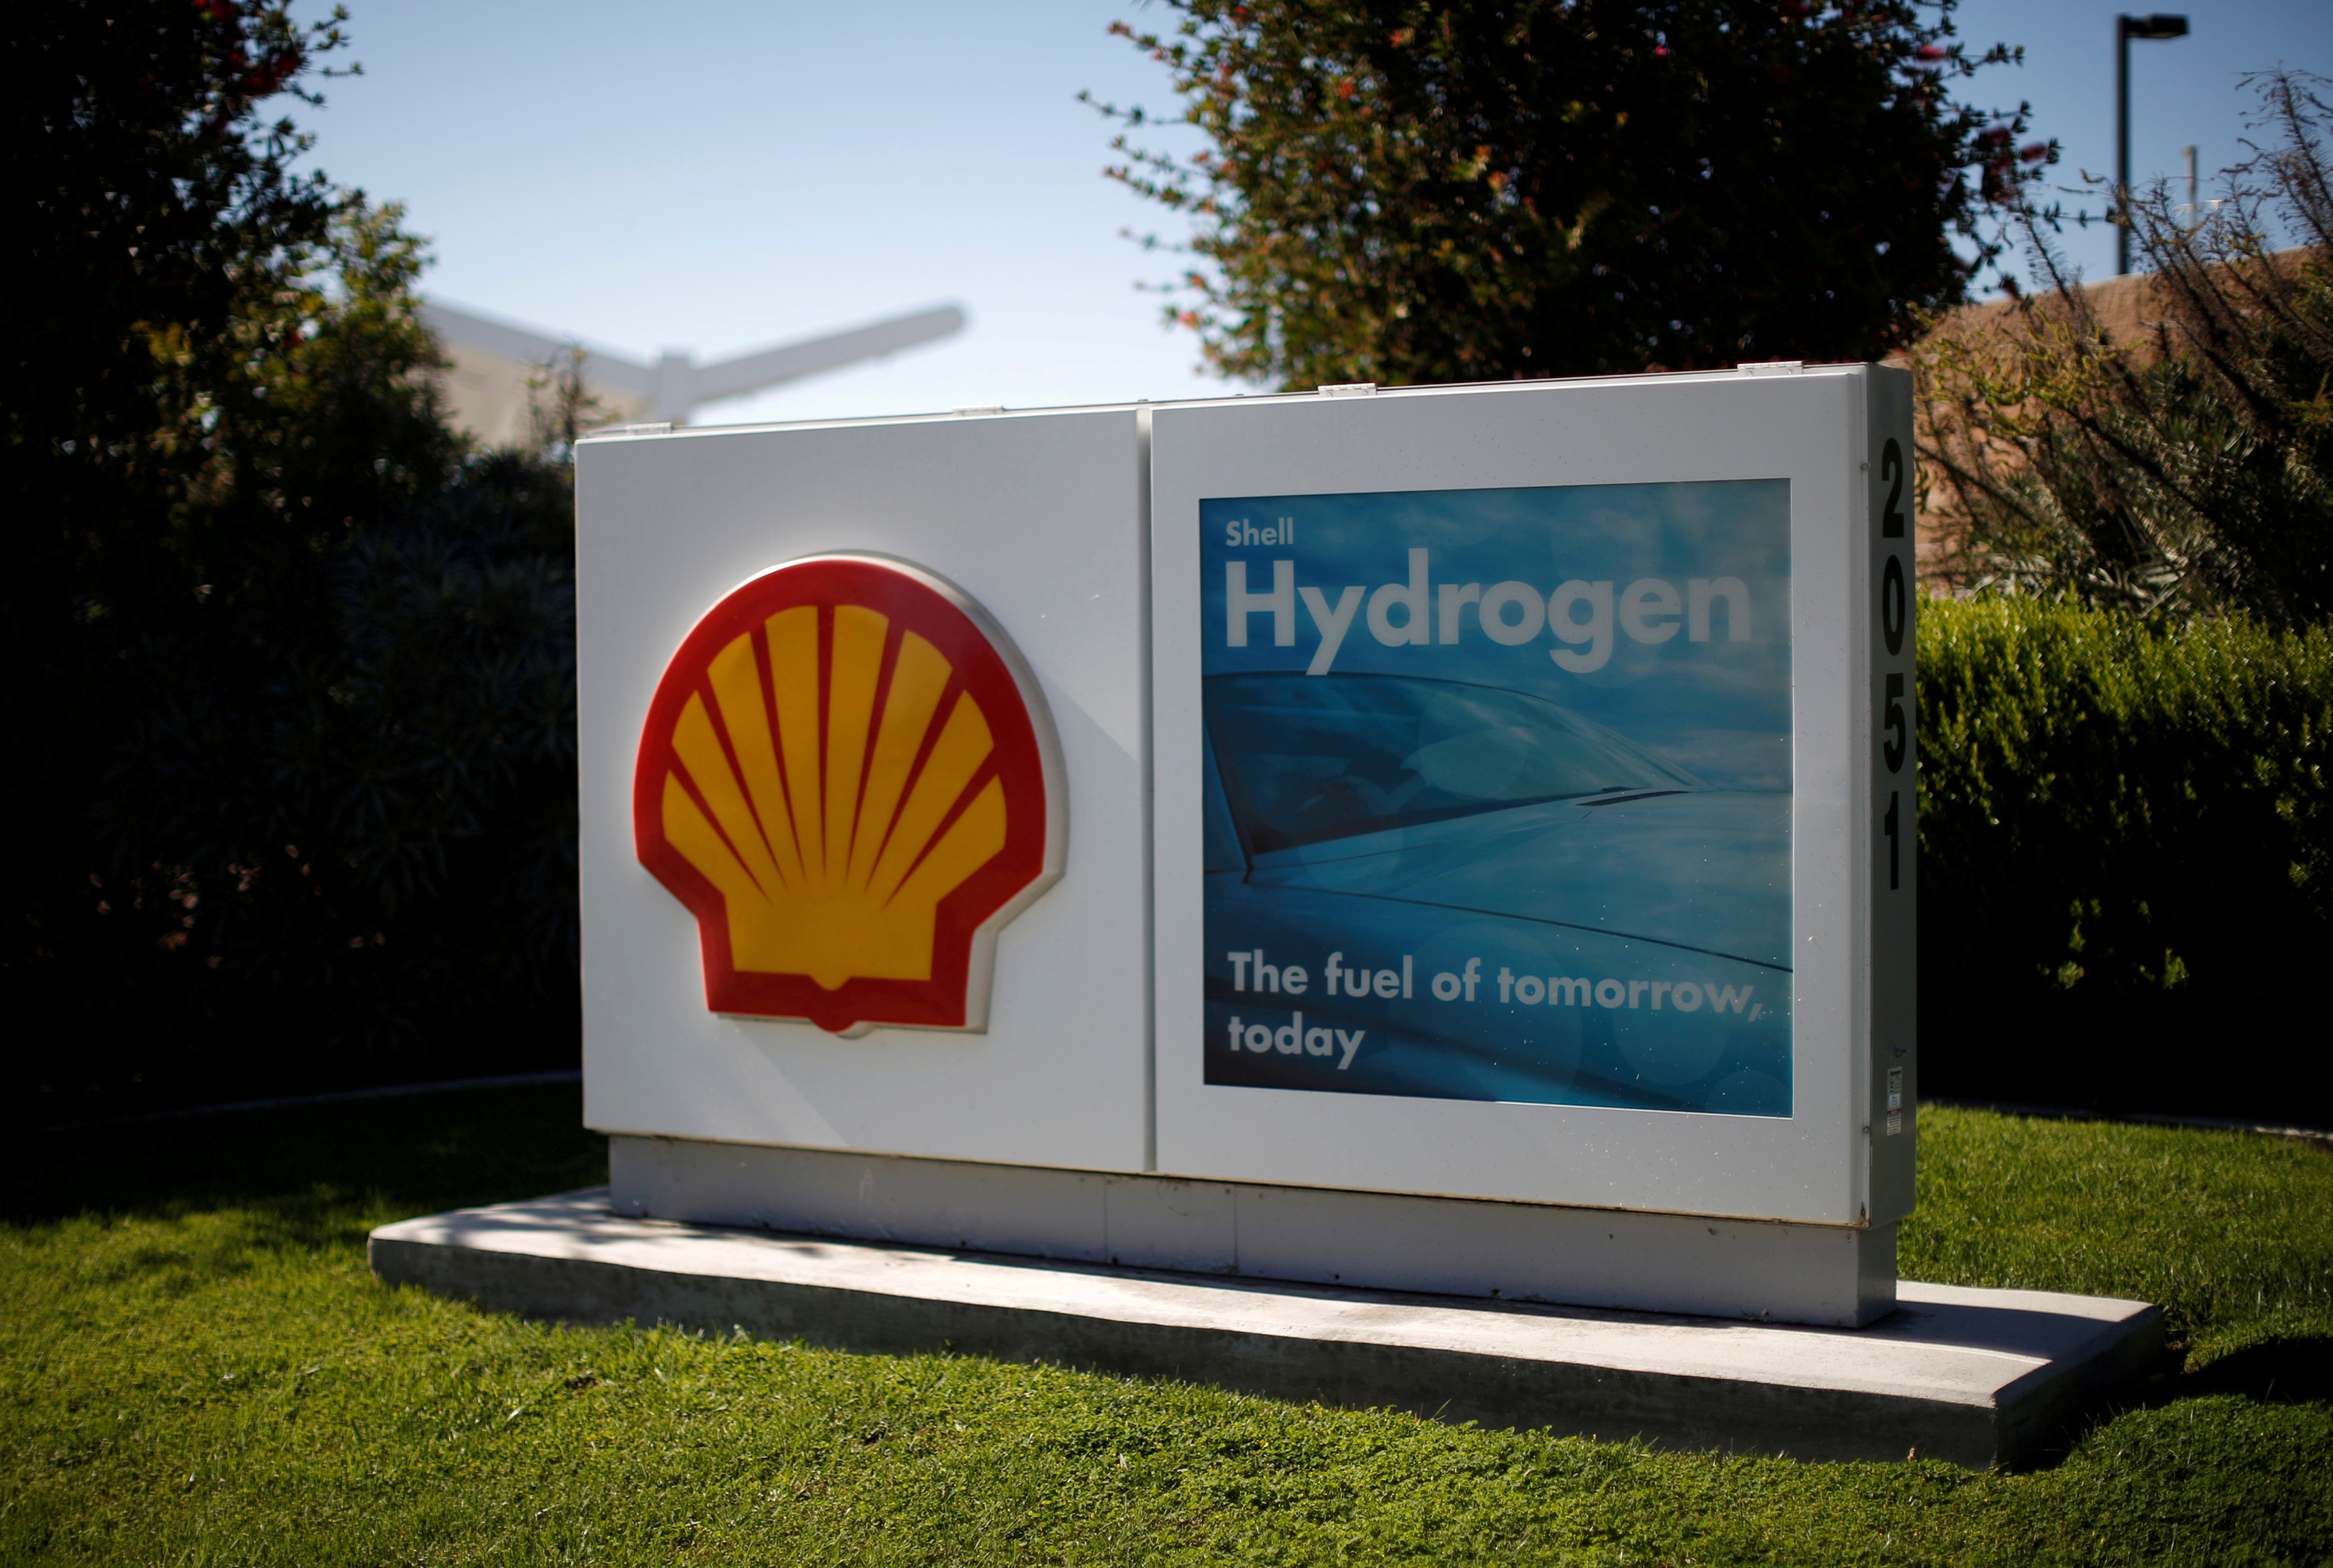 A Shell hydrogen station for hydrogen fuel cell cars is seen in Torrance, California September 30, 2014. REUTERS/Lucy Nicholson